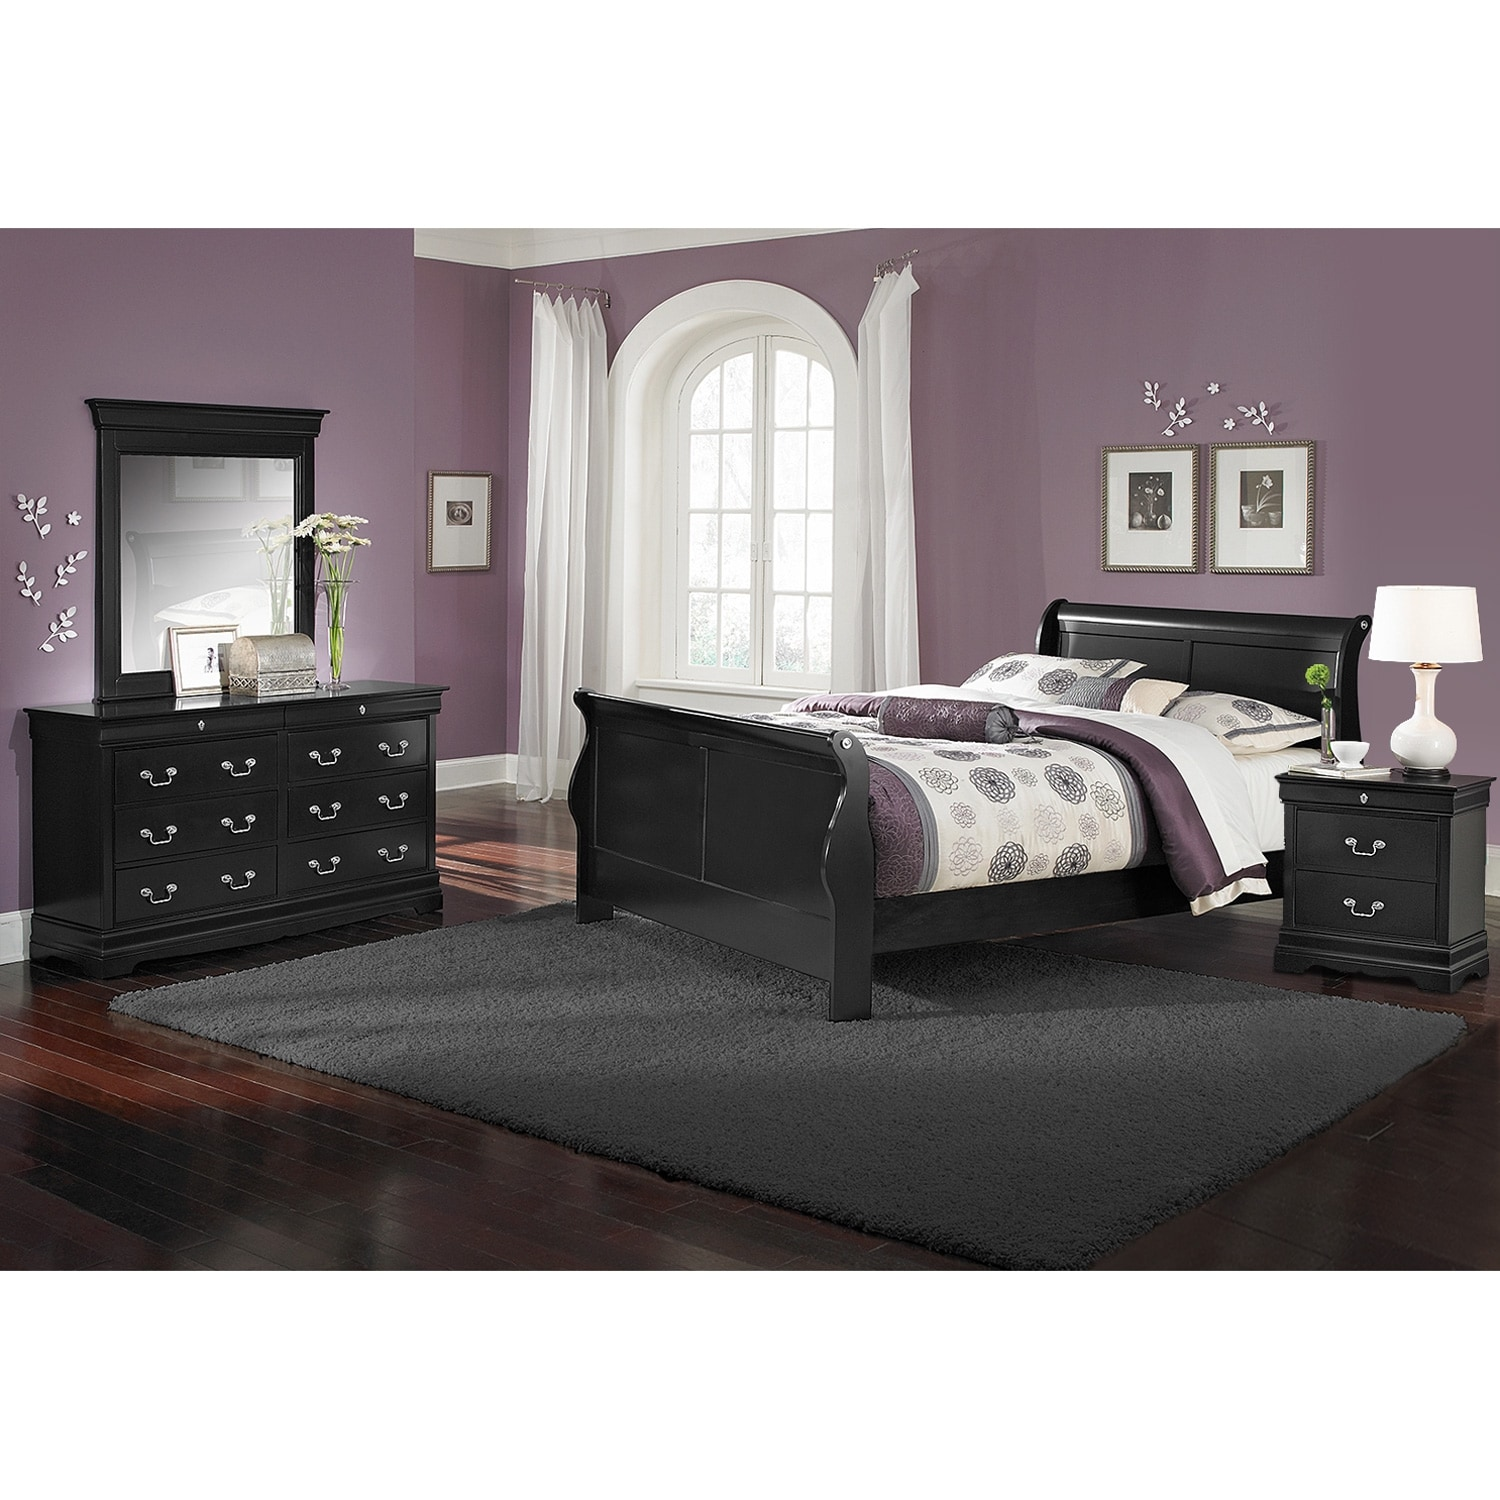 Neo classic youth 6 piece full bedroom set black for Bedroom 6 piece set